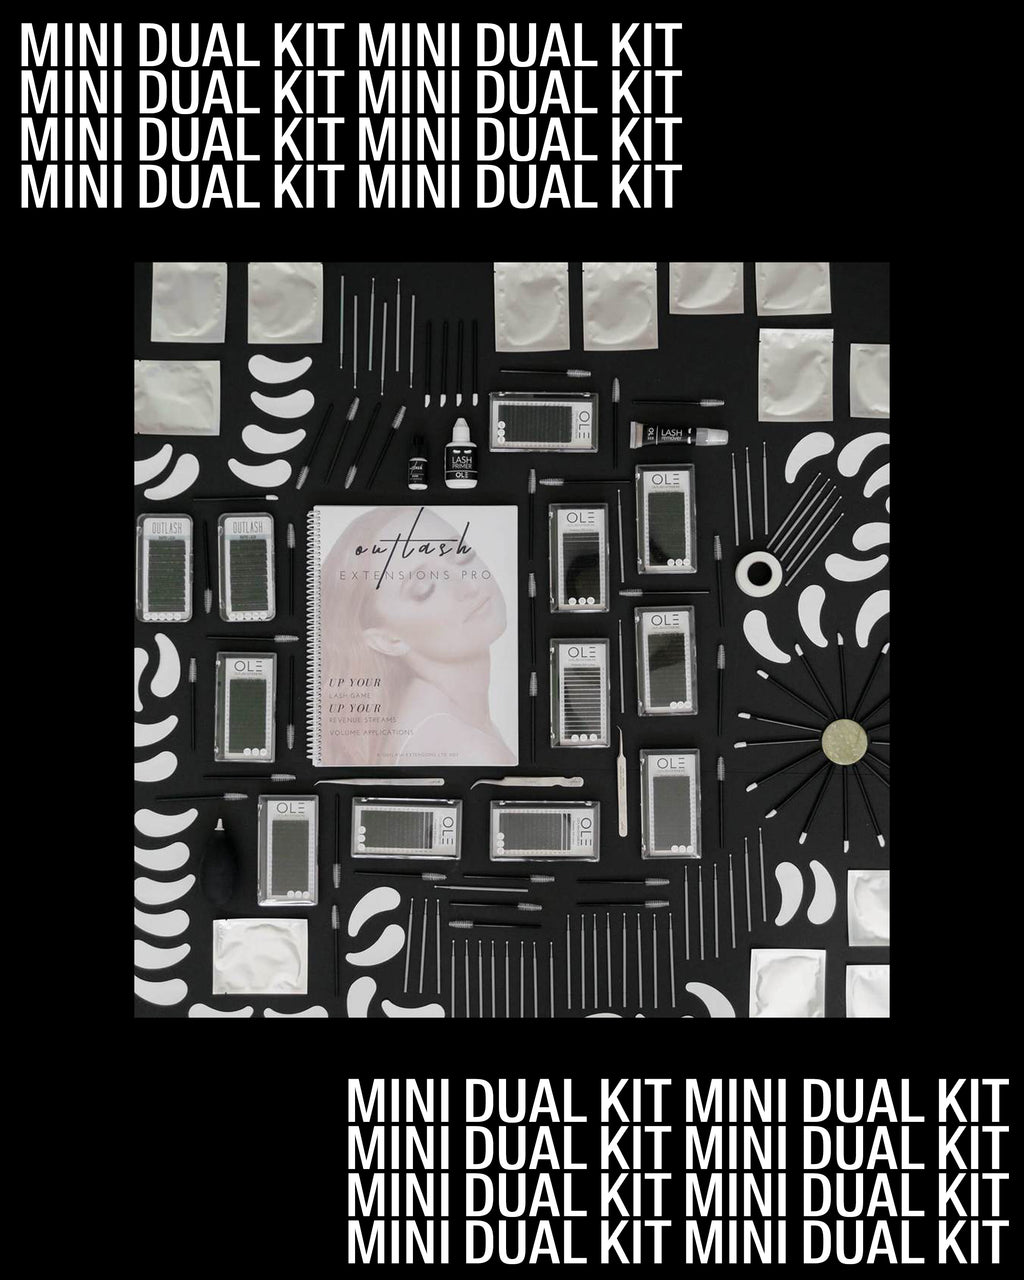 Classic/Volume Dual Mini Kit